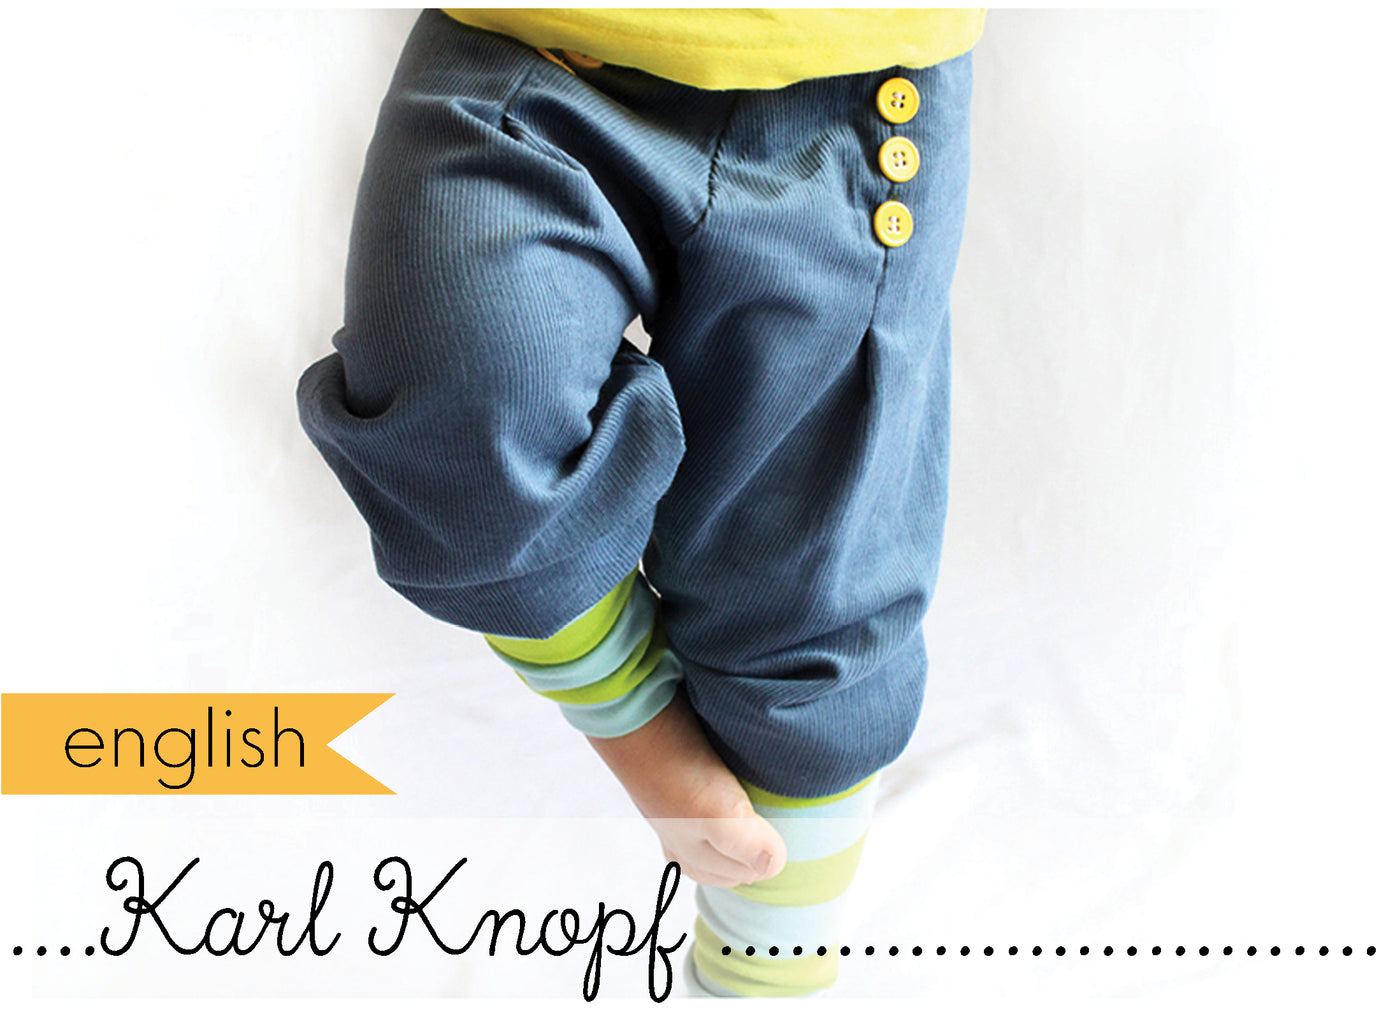 Karl Knopf - baggy trousers size (english)